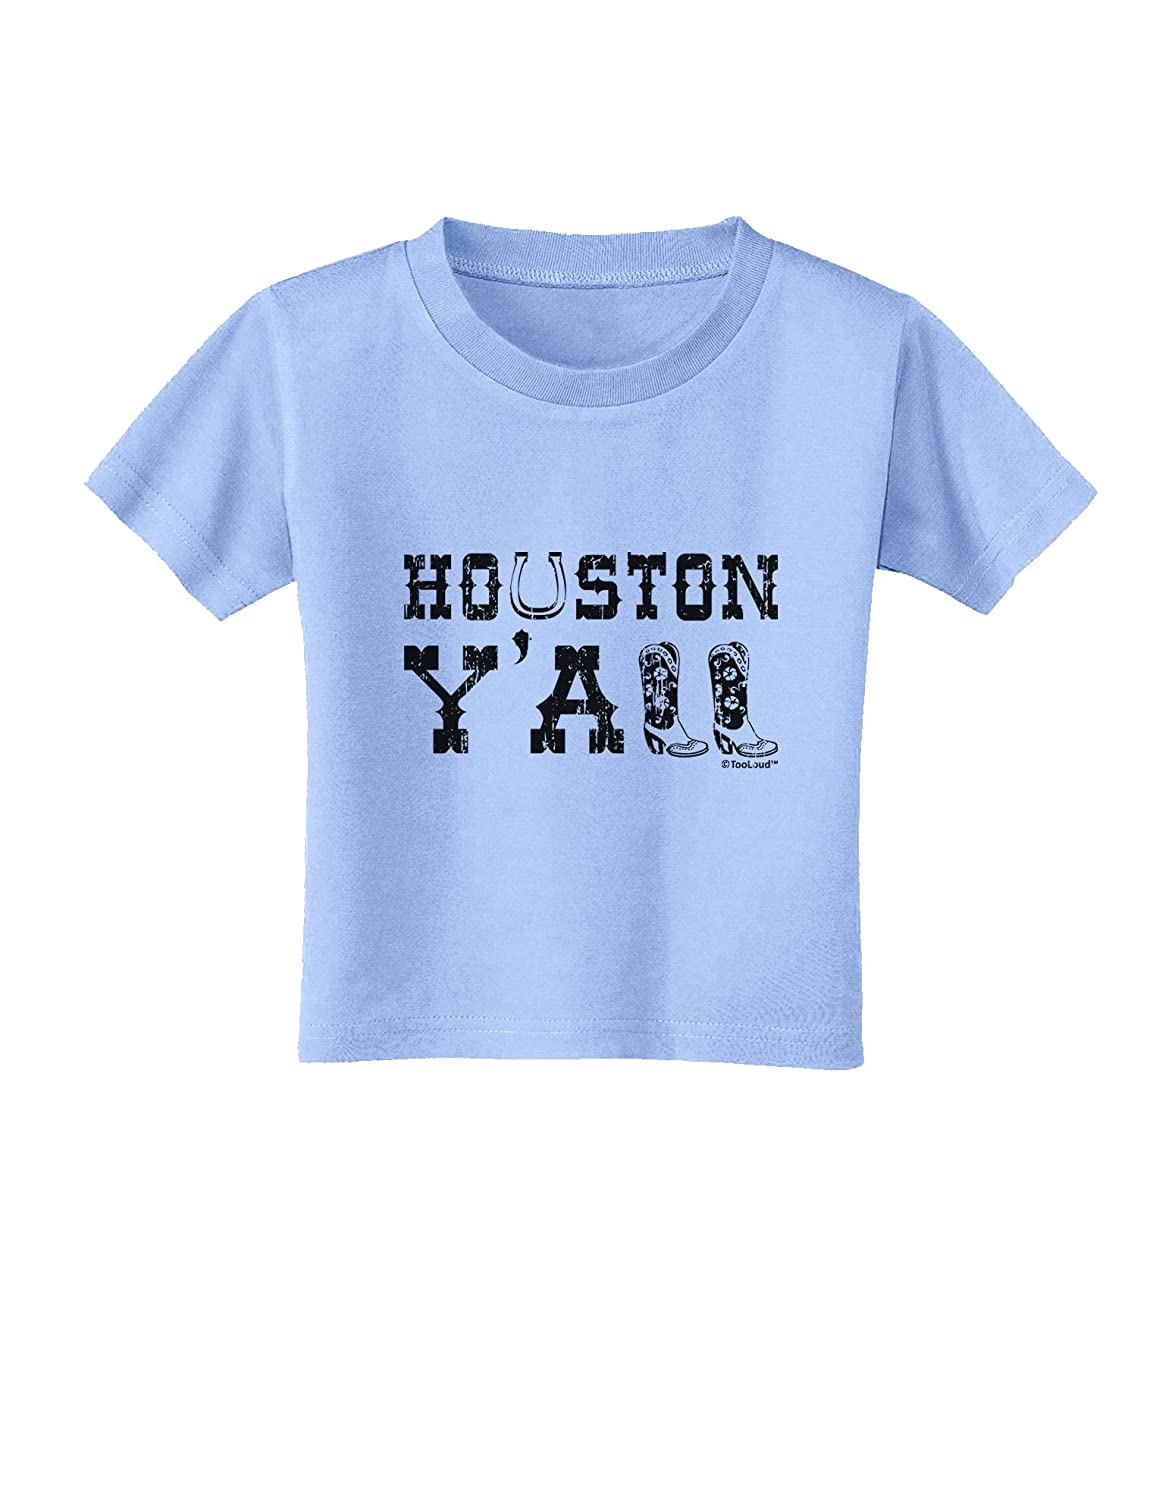 TooLoud Houston Yall Boots Texas Pride Toddler T-Shirt